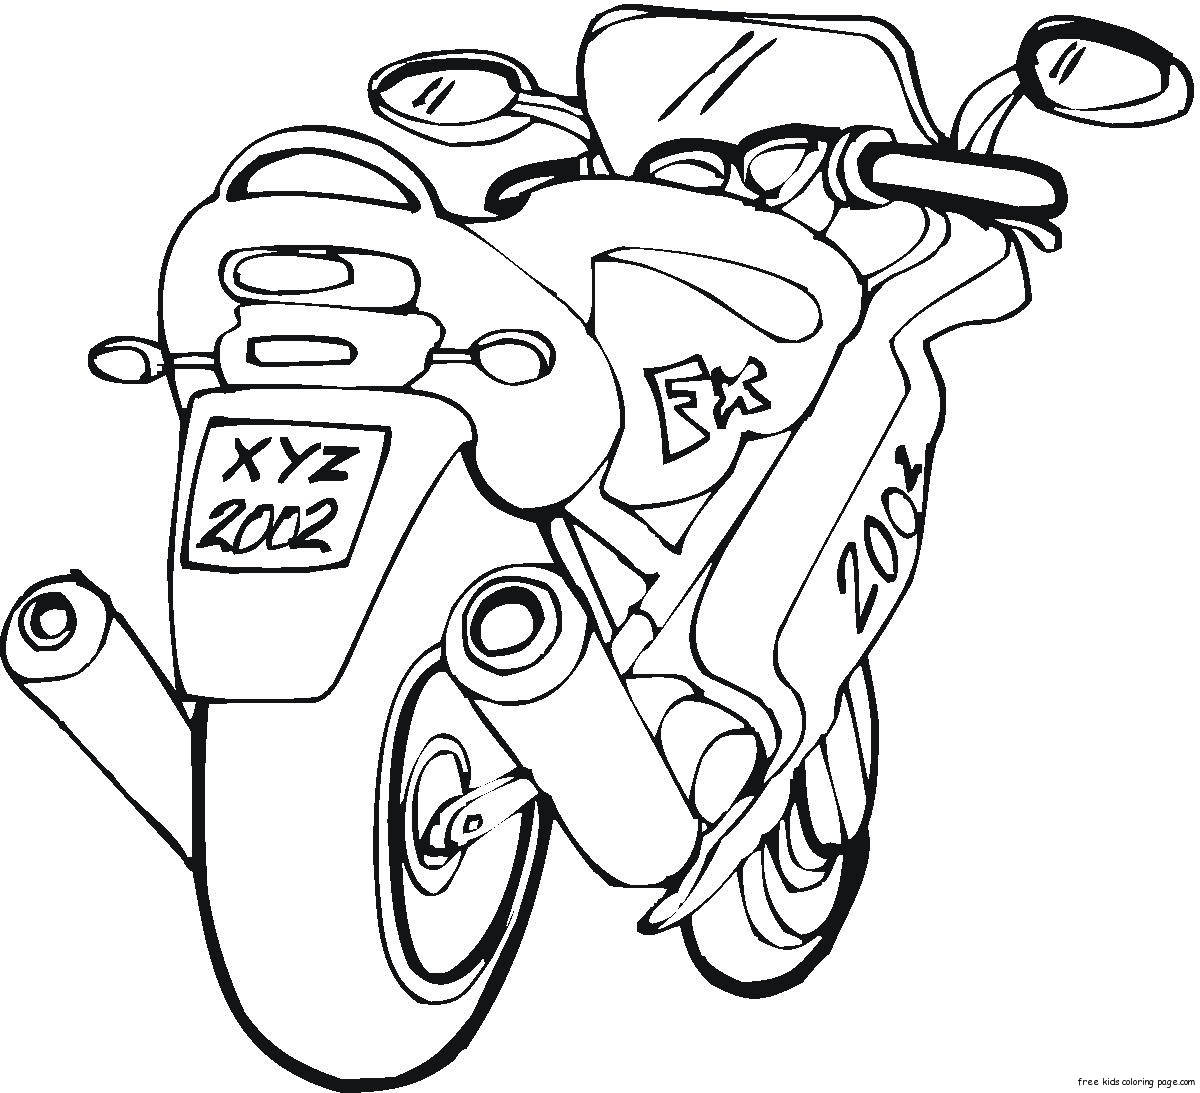 motor bike coloring page  Free Printable Coloring Pages